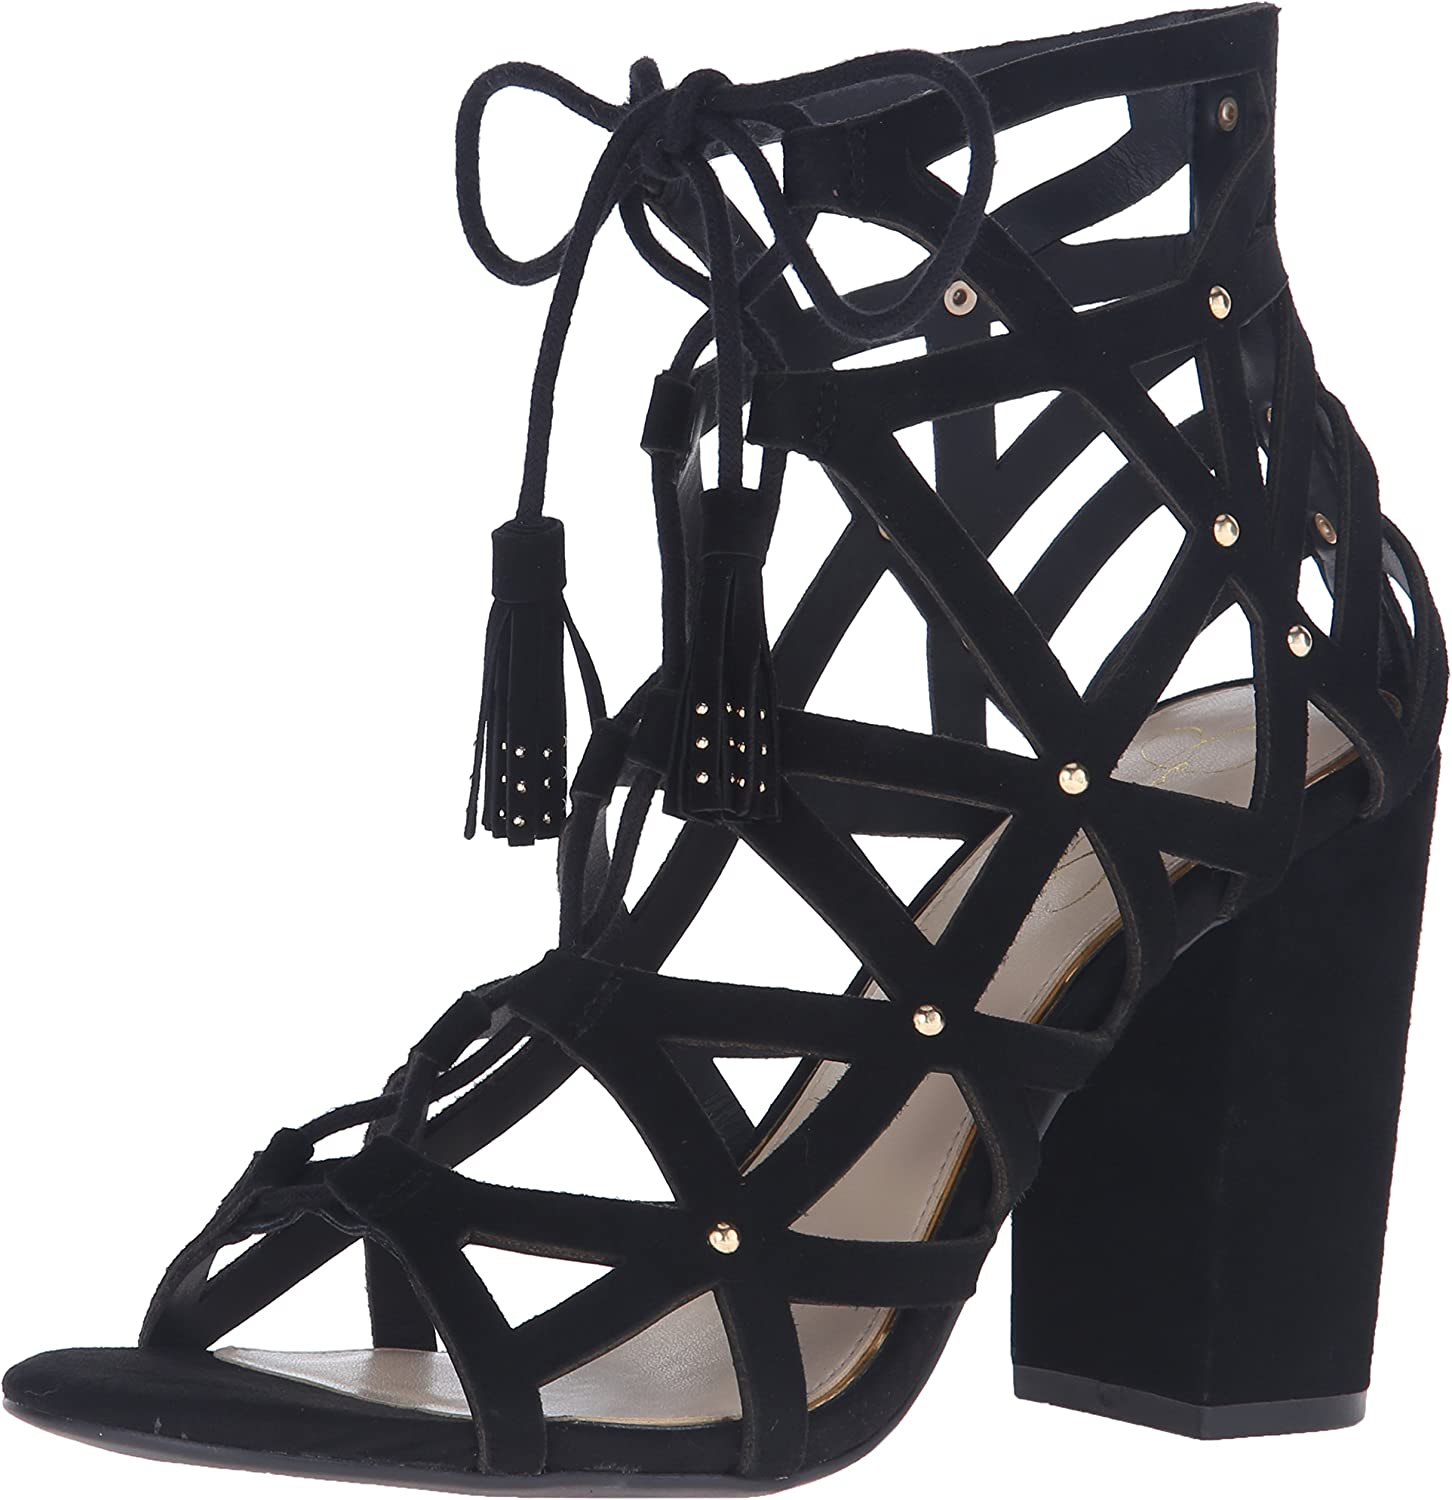 Jessica Simpson Women's Kariba dress Sandal